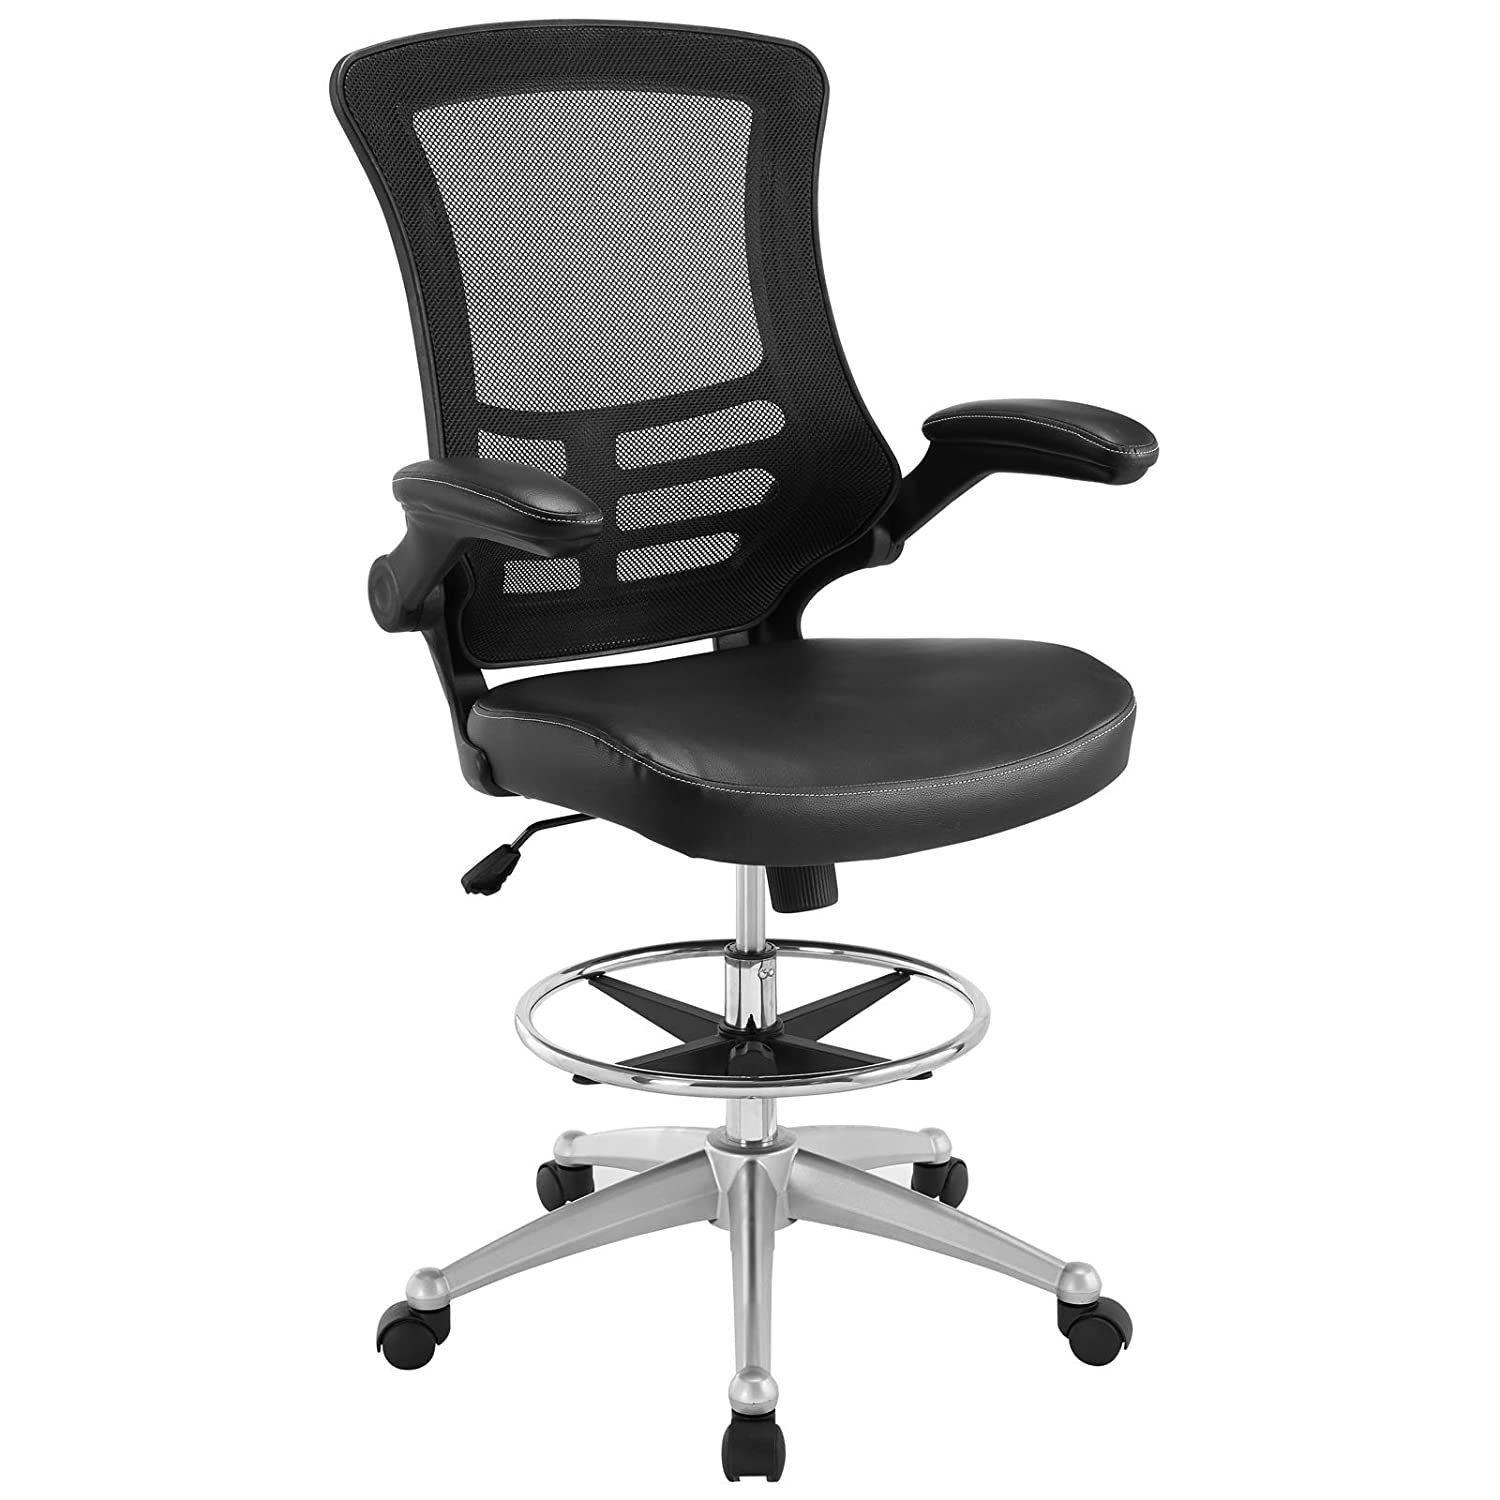 best chair desk of tall desks fice chairs ergonomic angle for standing stance office